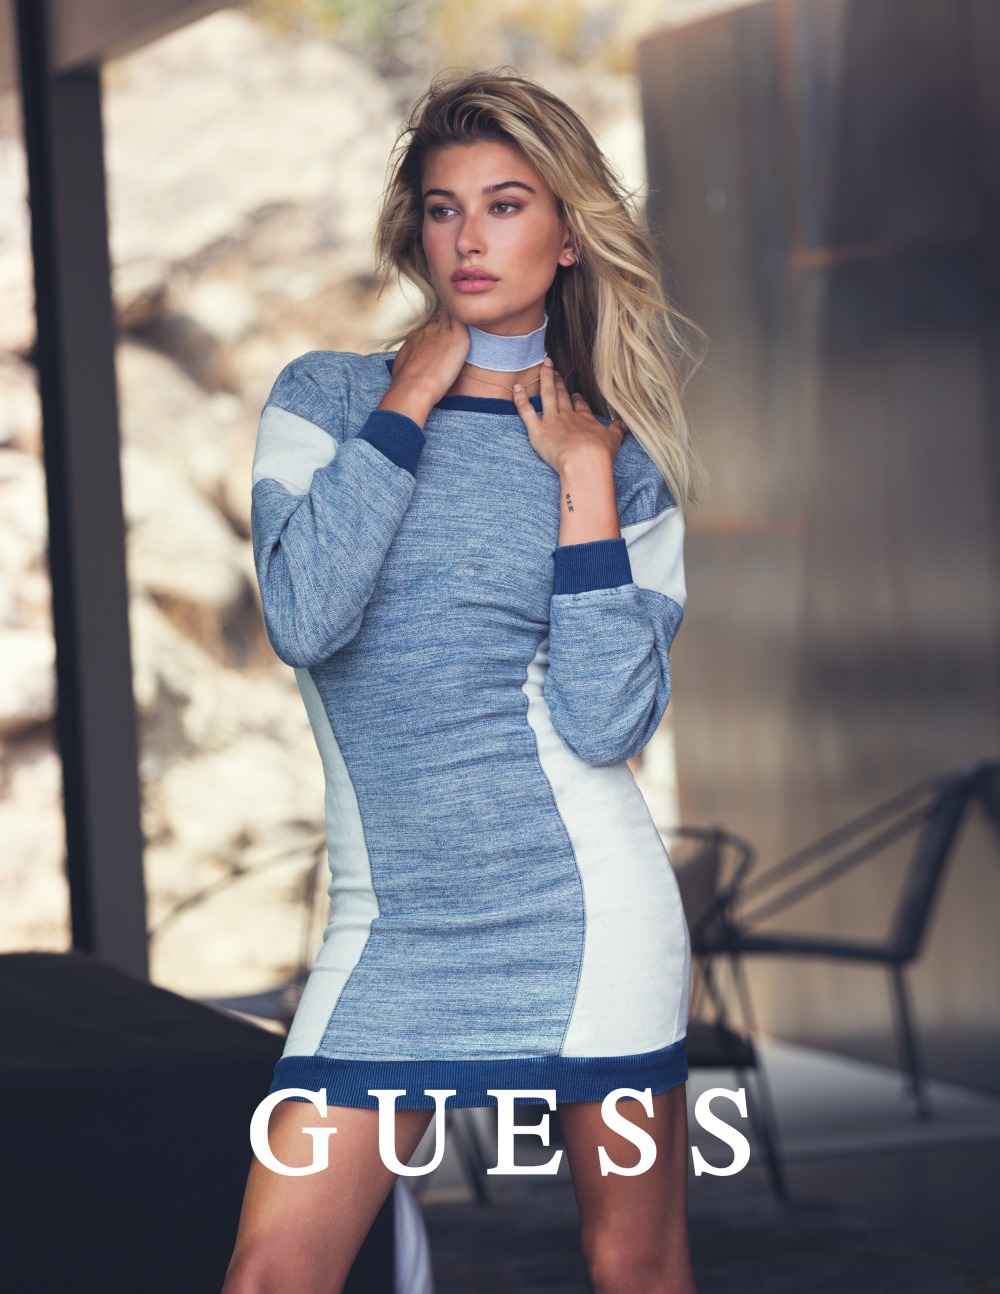 guess-jeans-holiday-2016-photography-by-david-bellemre-at-thomas-treuhfa-19